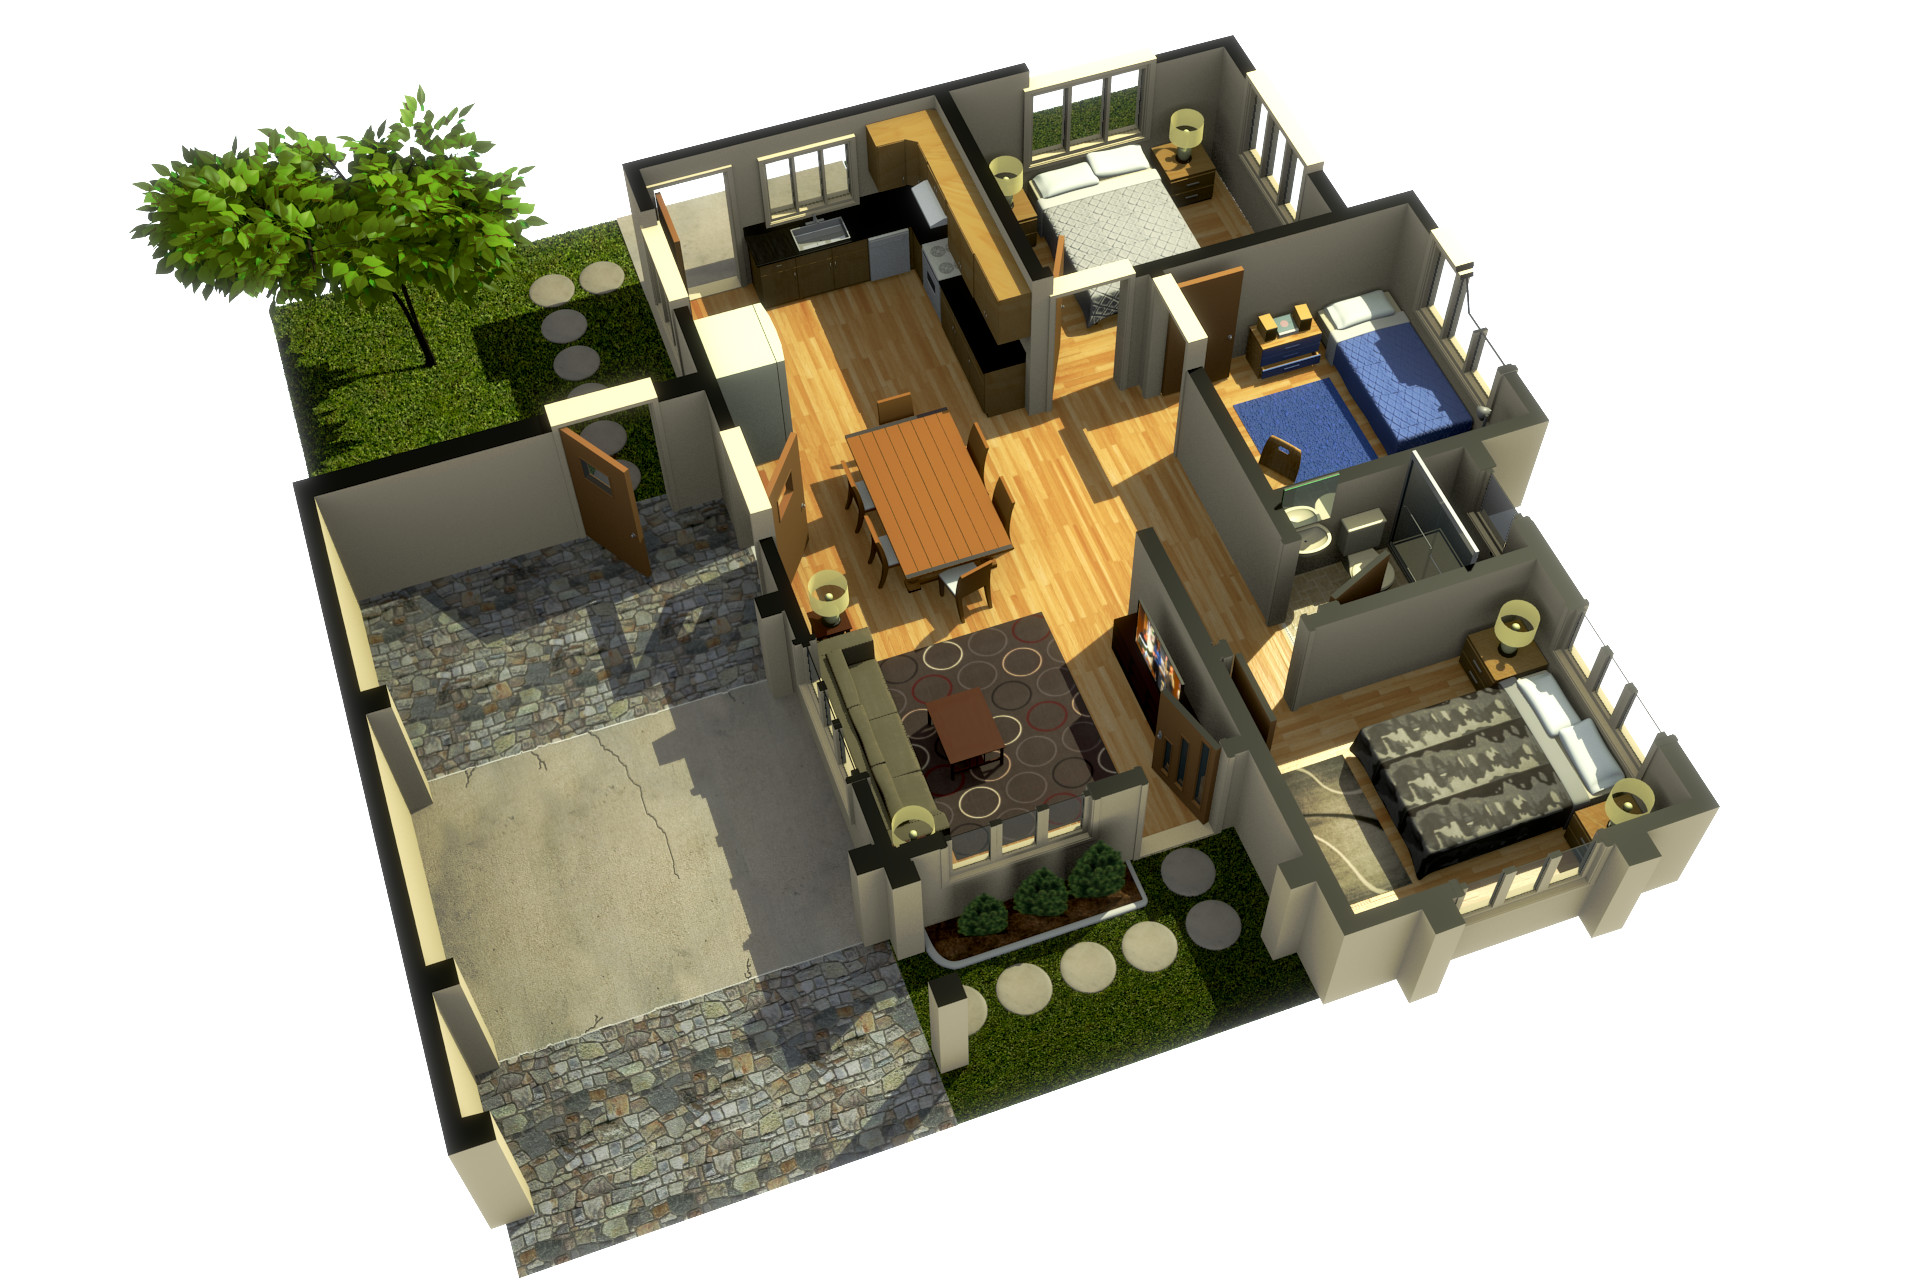 Garrett s small house 3d floor plan distribuci n de for Distribucion de casas modernas de una planta